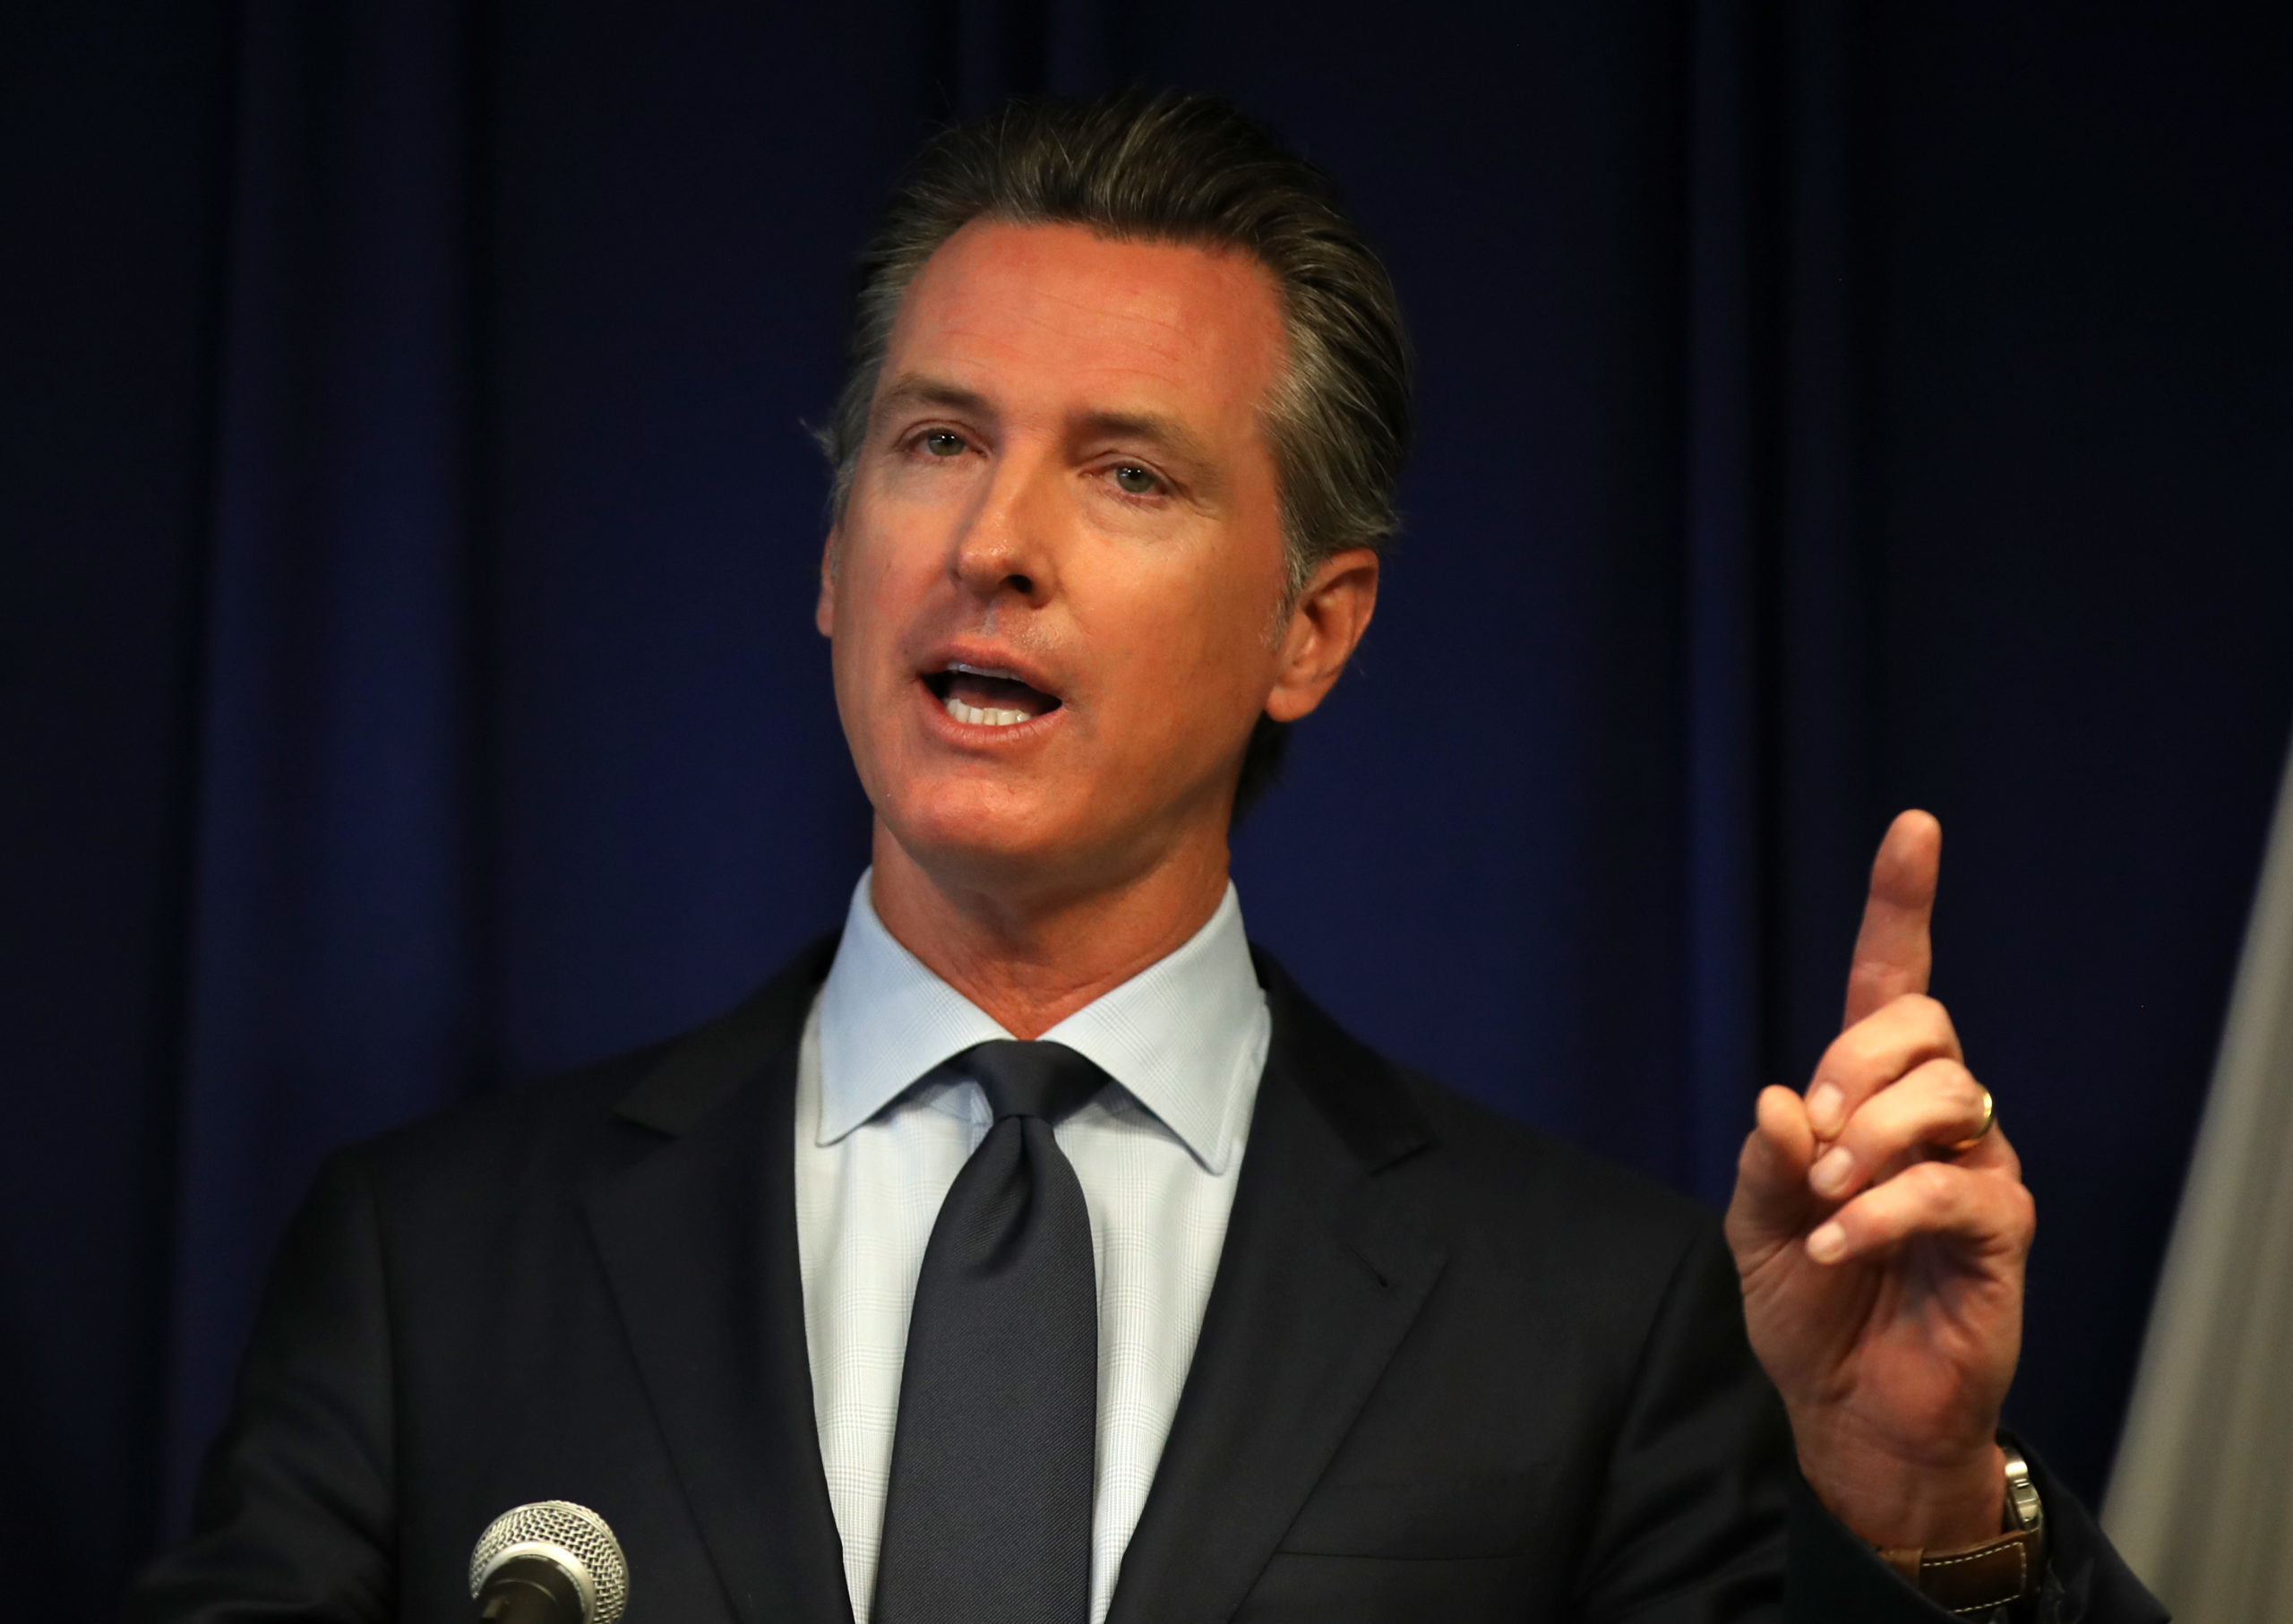 California Governor Gavin Newsom signed the bill on Friday